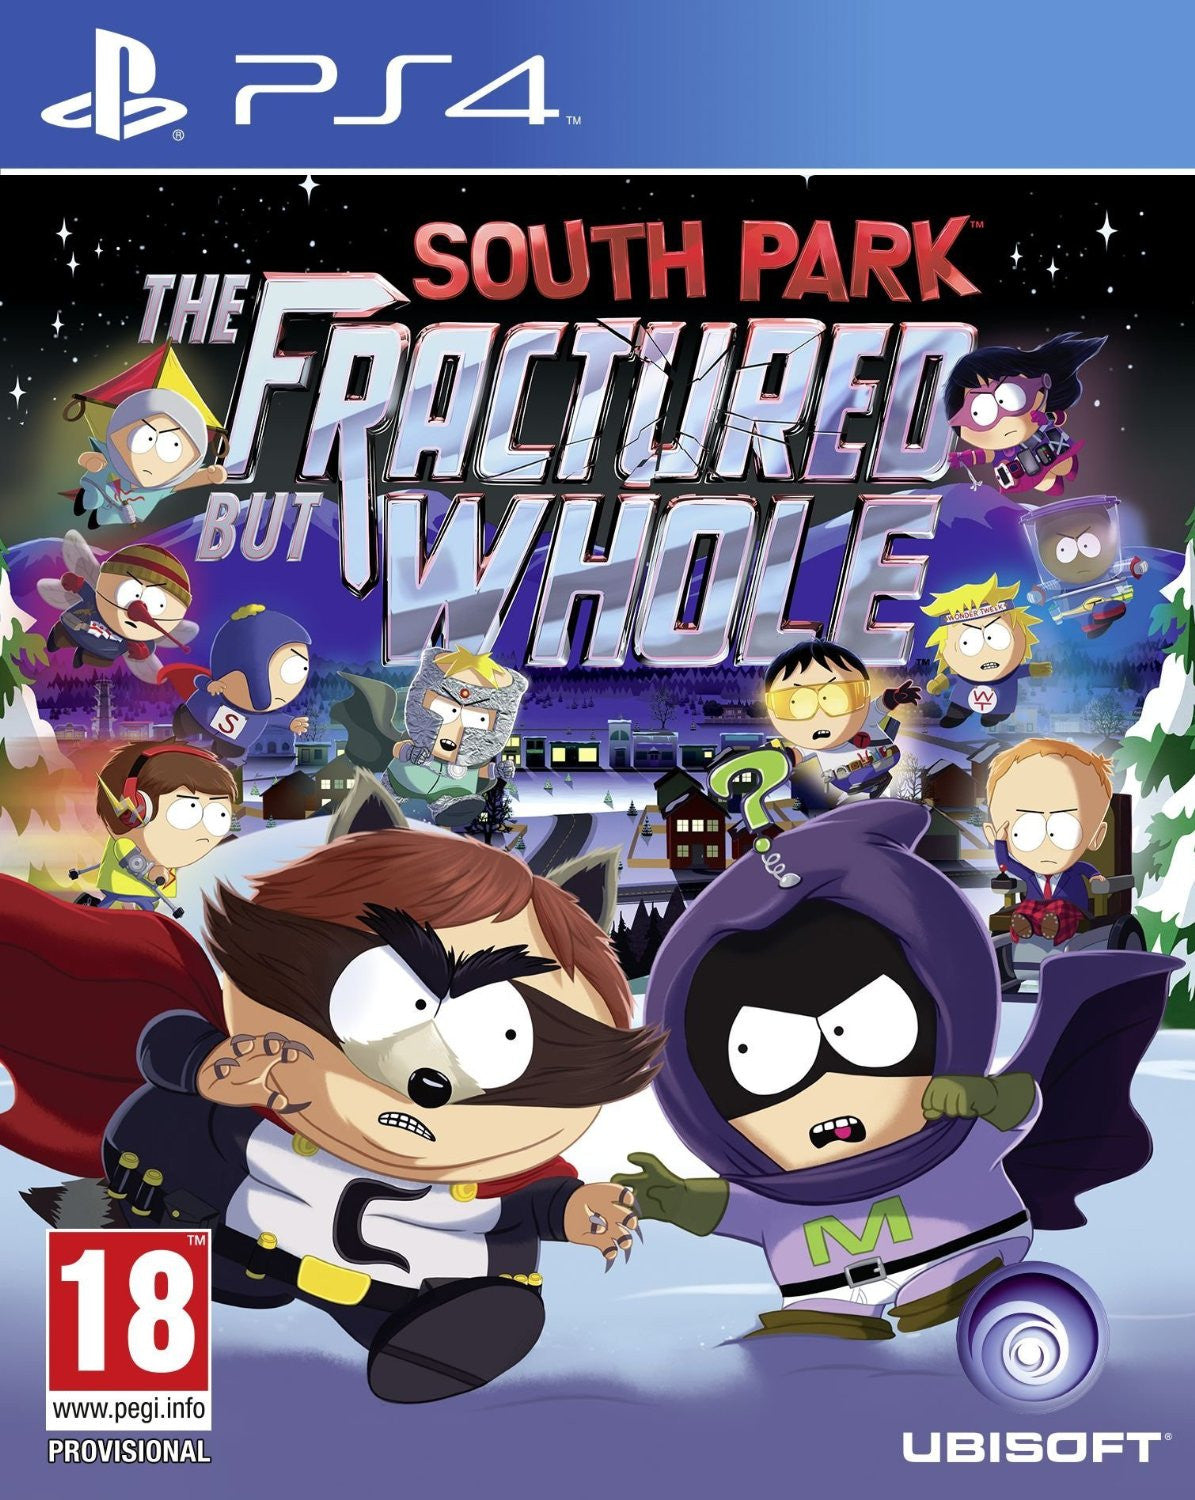 South Park: The Fractured But Whole - PS4 - Video Games by UBI Soft The Chelsea Gamer